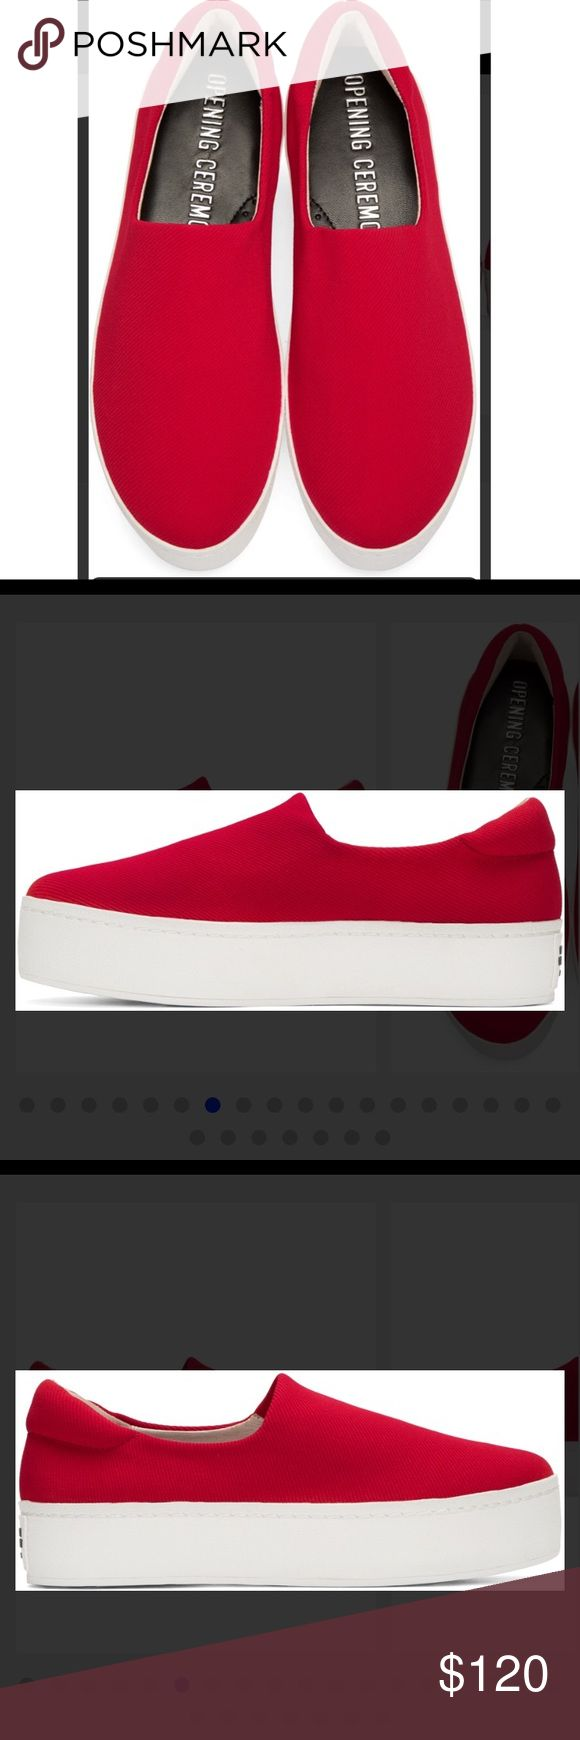 Opening Ceremony platform sneakers Women's Red Cici Slip On Platform Sneakers NWT.No box.No flaws.These slip-on Opening Ceremony sneakers are made from stretch fabric for extra comfort. Crepe platform. Rubber sole. Fabric: Stretch weave. This item cannot be gift-boxed. Platform: 1.5in / 35mm. Color: red Opening Ceremony Shoes Sneakers